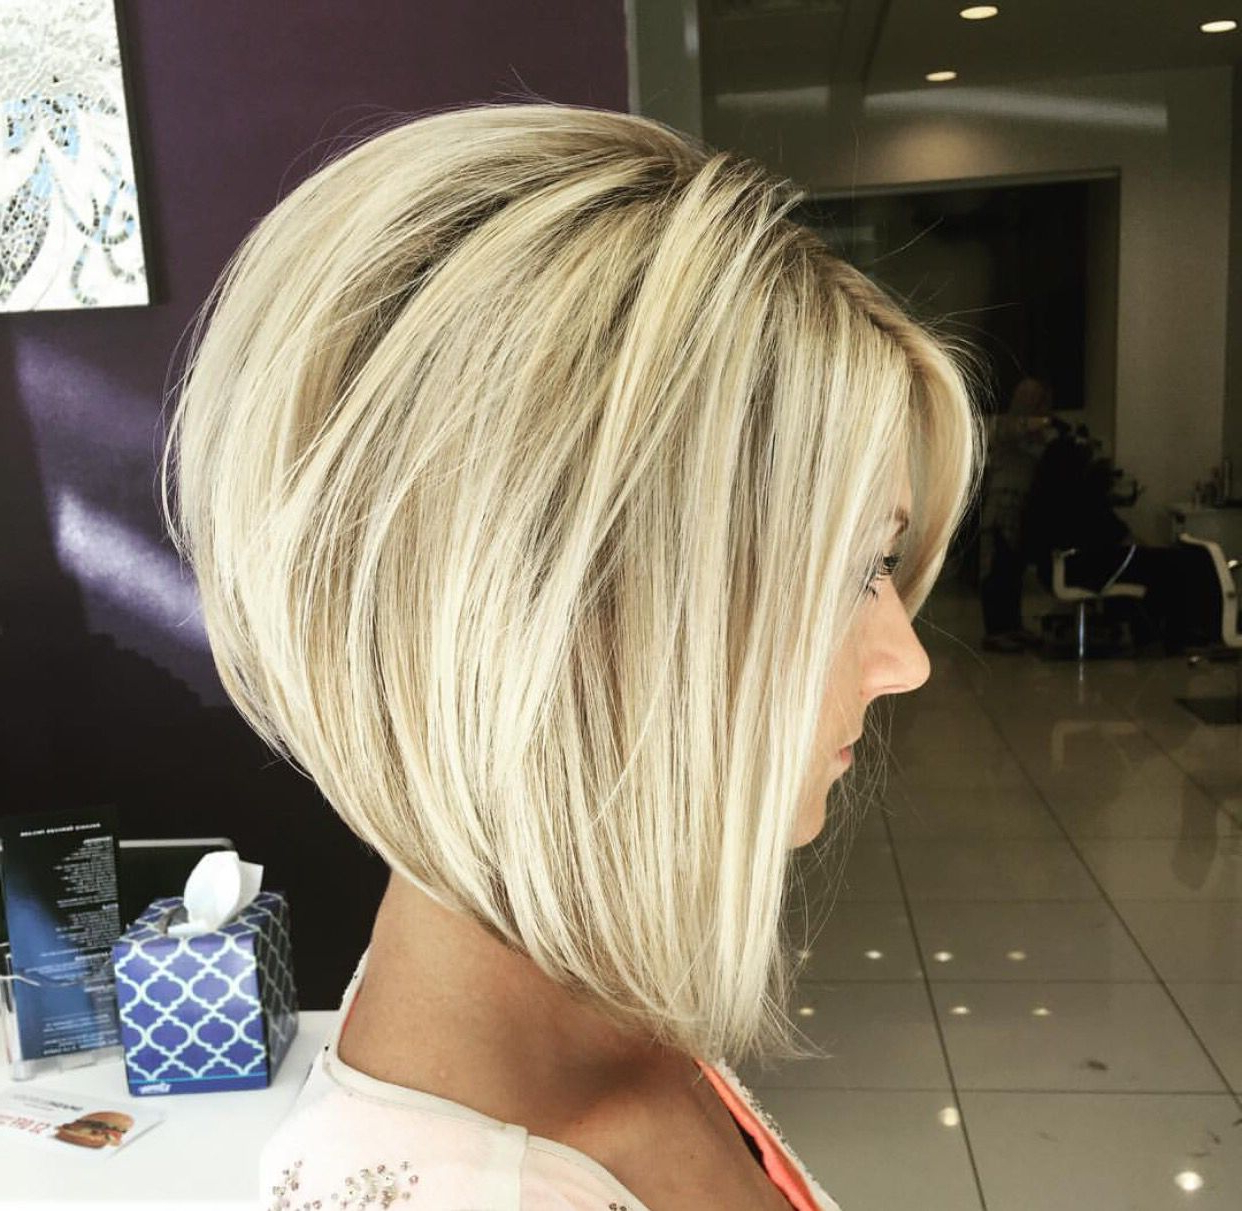 Stacked, Layered Bob With Bangs Framing The Face– Short In The Back Within Honey Blonde Layered Bob Hairstyles With Short Back (View 20 of 20)